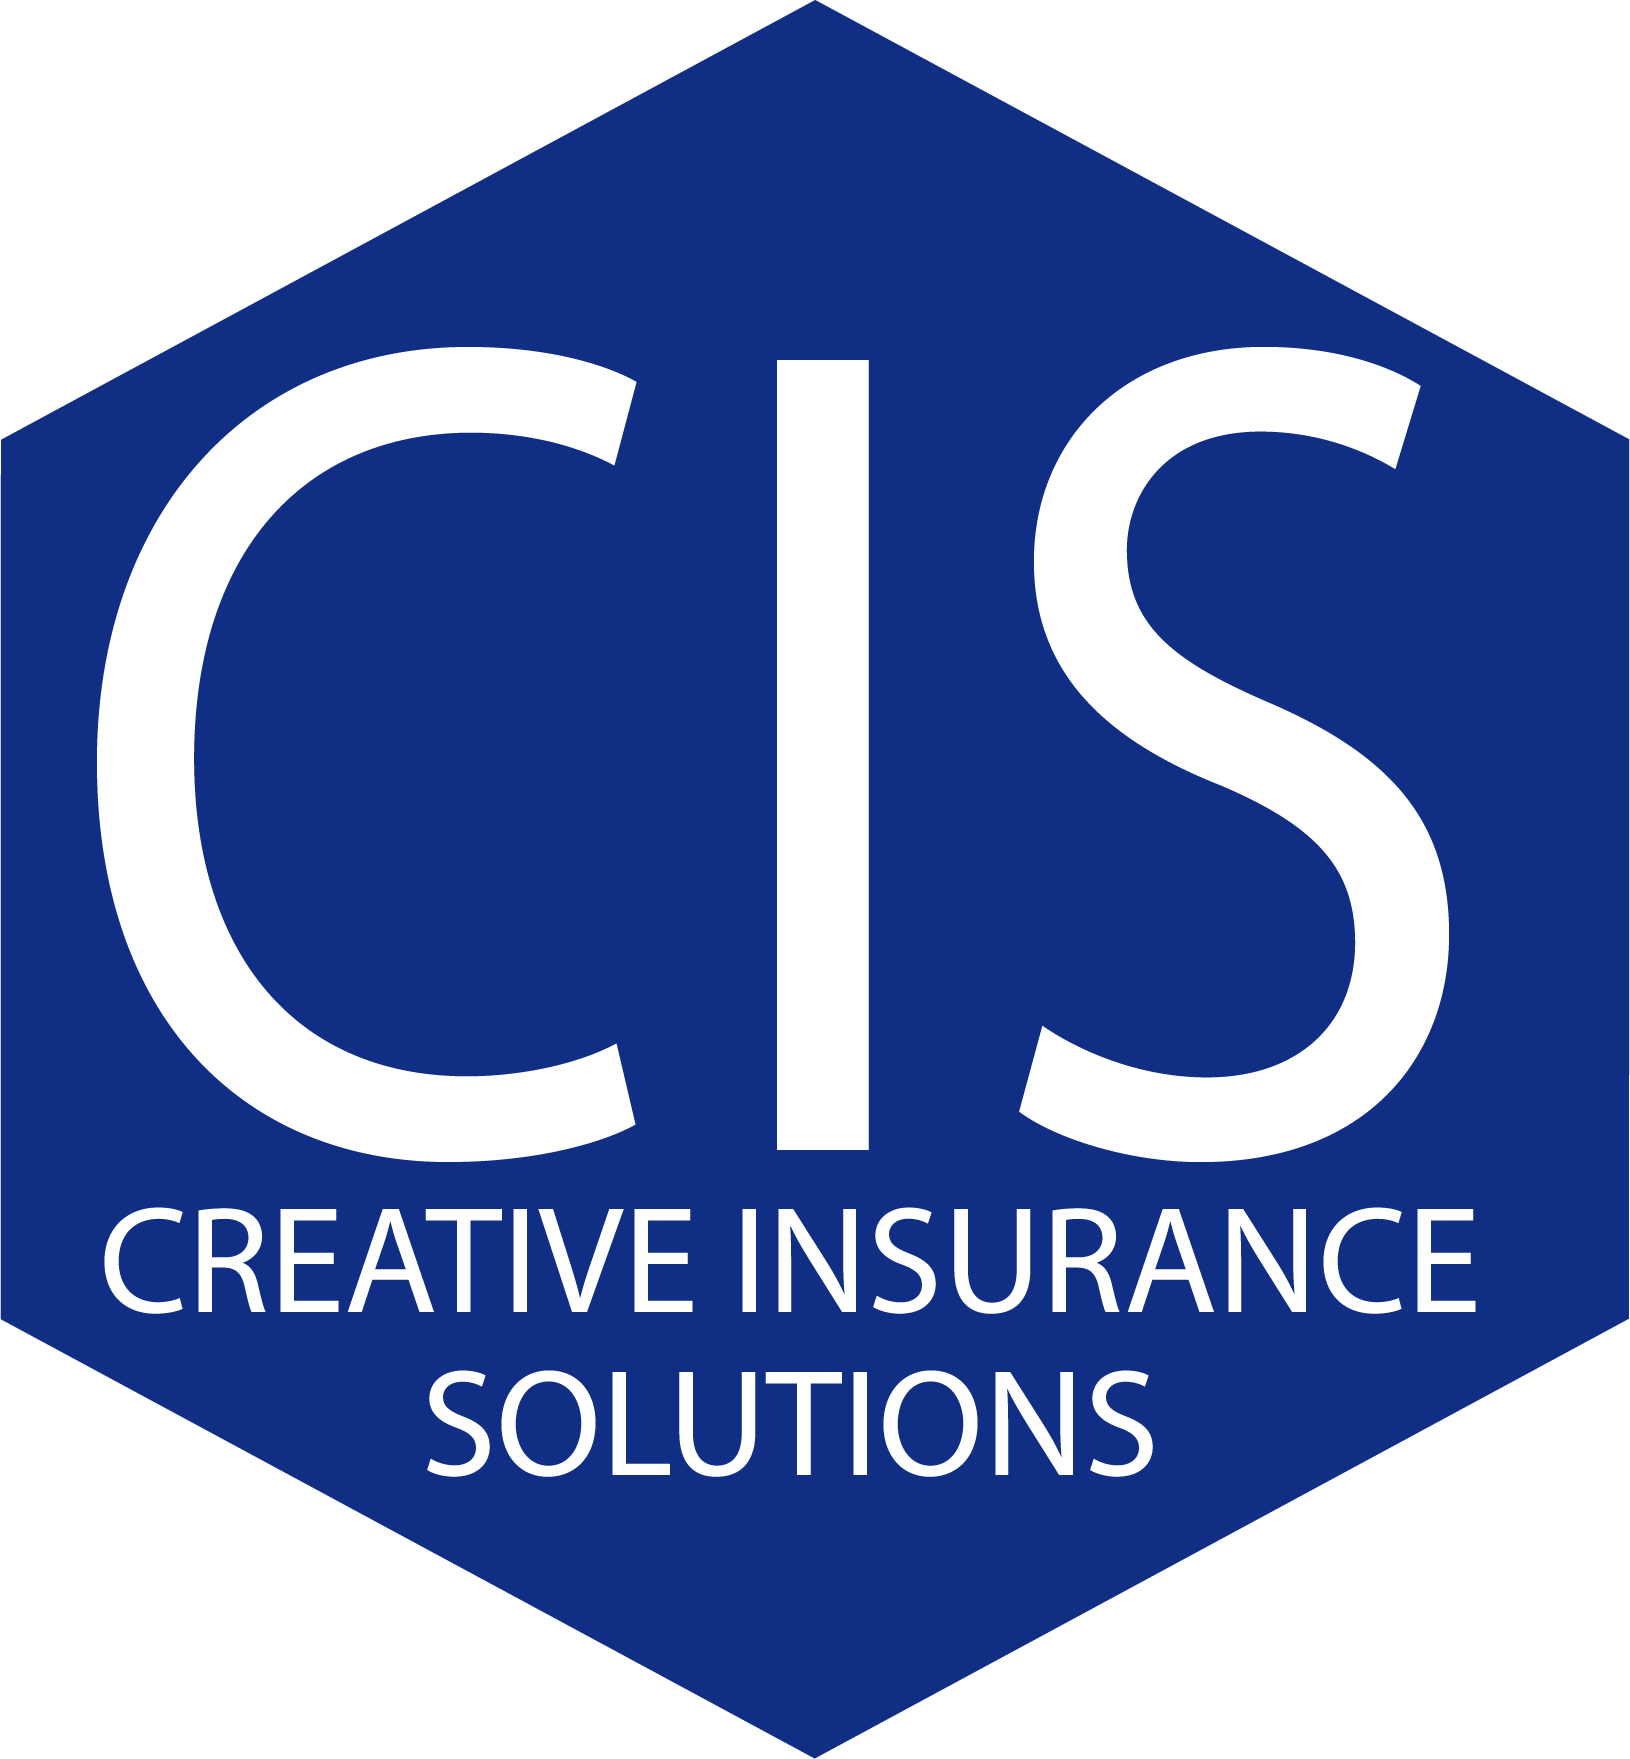 Creative Insurance Solutions